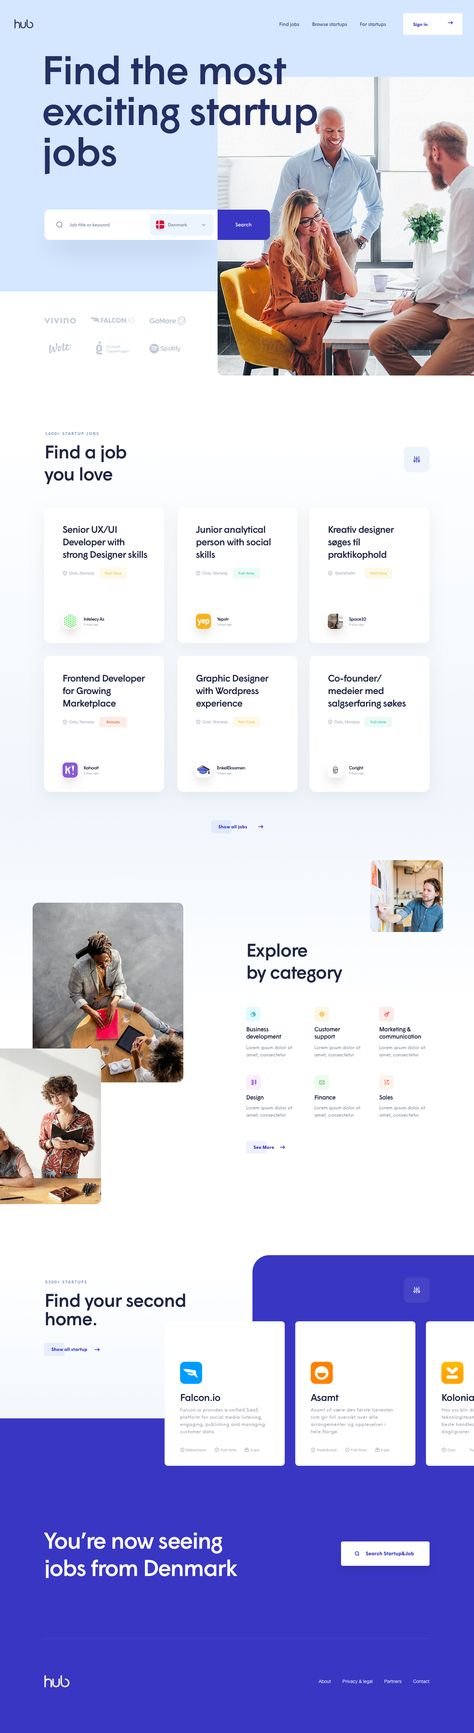 Frontpage_Firsttime_02.png by Martin Strba